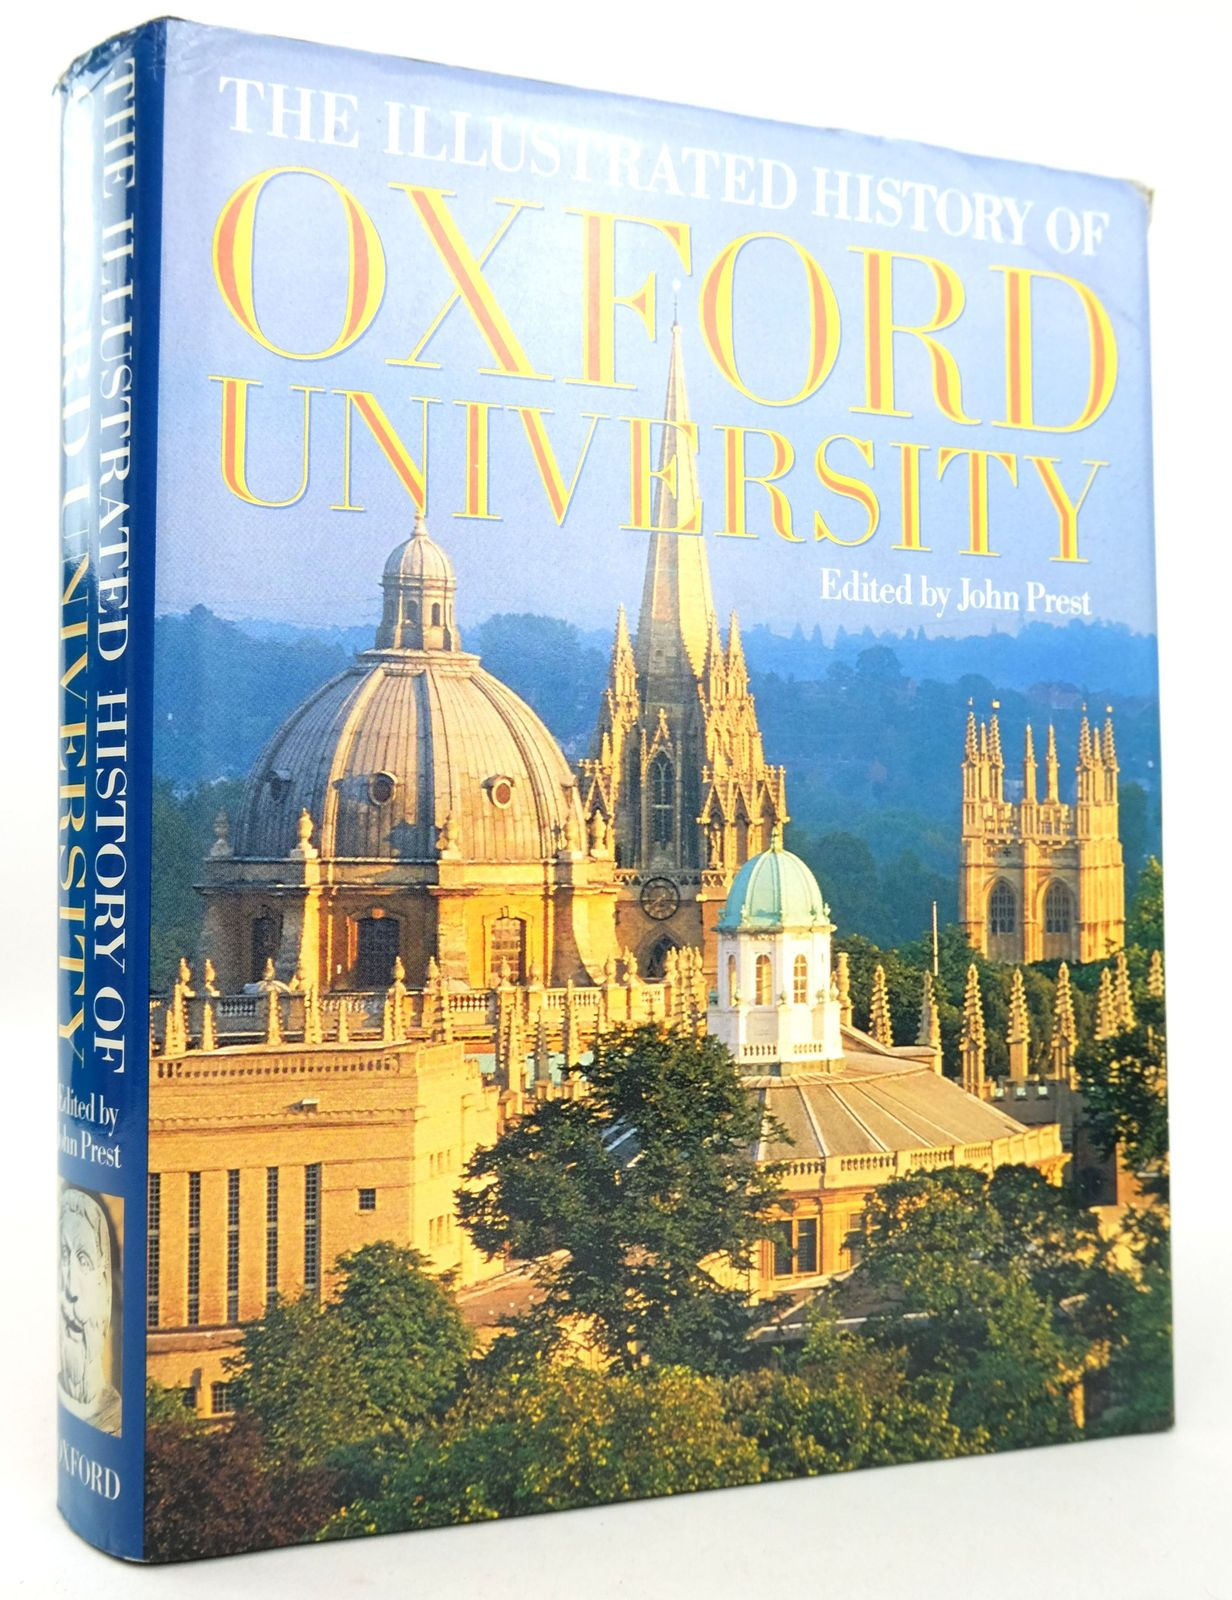 Photo of THE ILLUSTRATED HISTORY OF OXFORD UNIVERSITY written by Prest, John published by Oxford University Press (STOCK CODE: 1819208)  for sale by Stella & Rose's Books